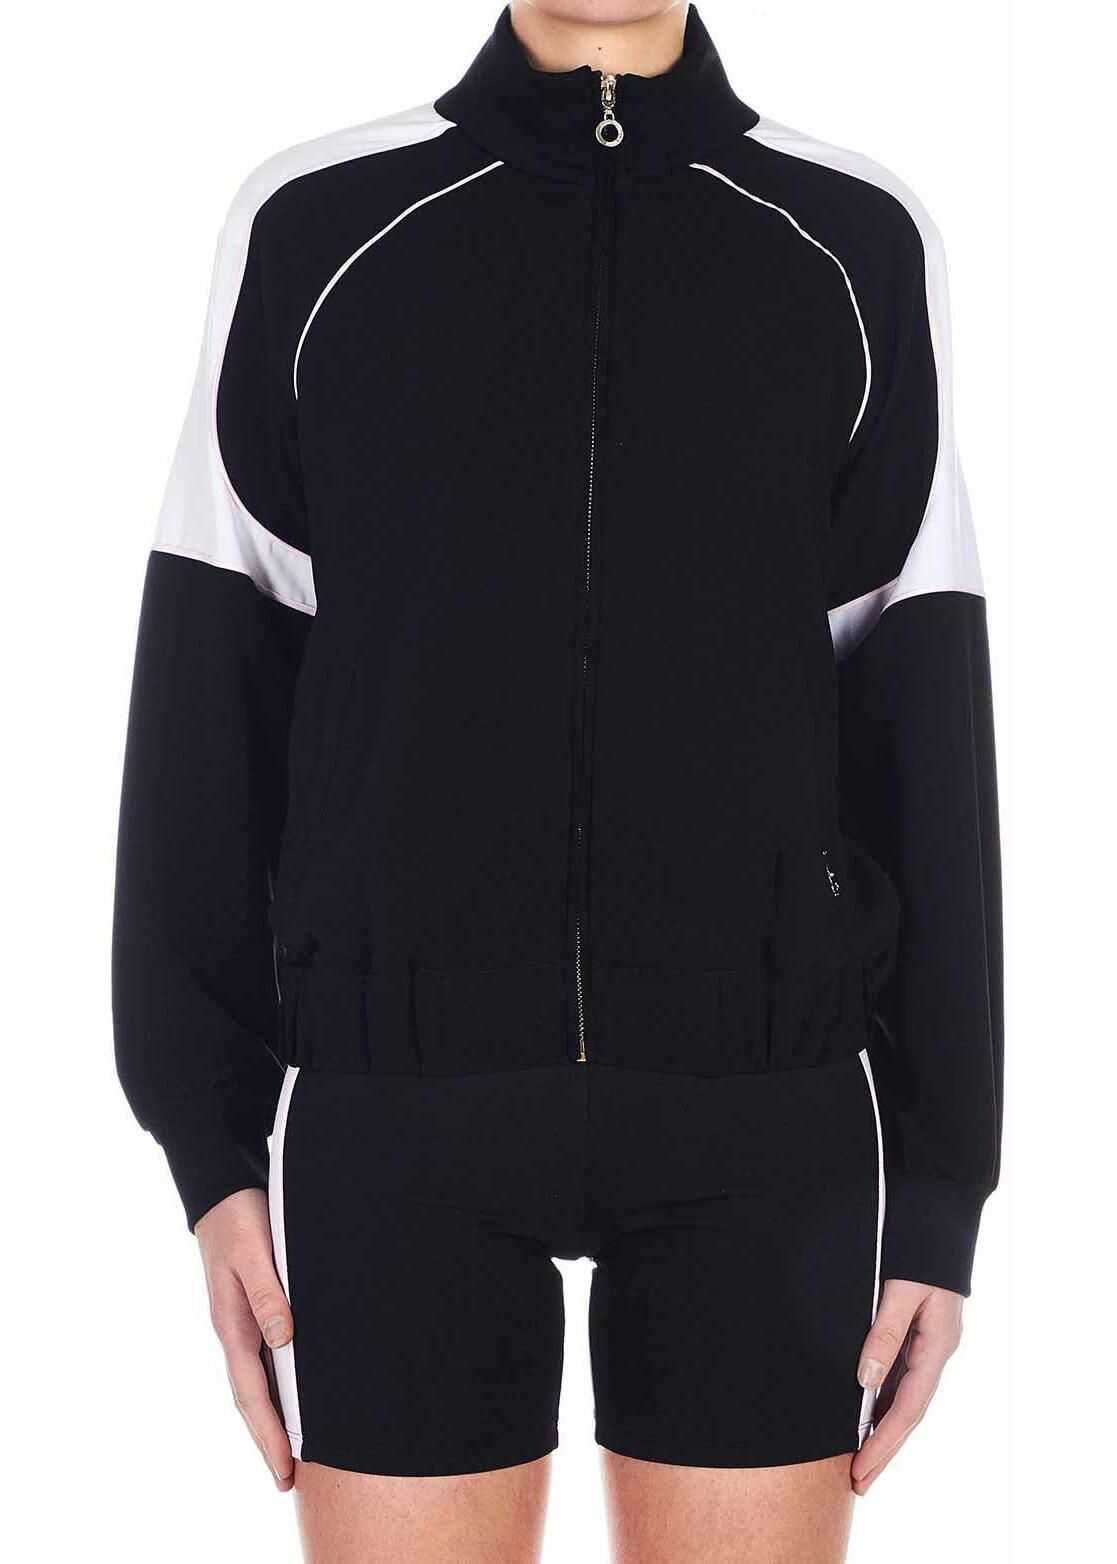 Liu Jo Color block sports jacket Black